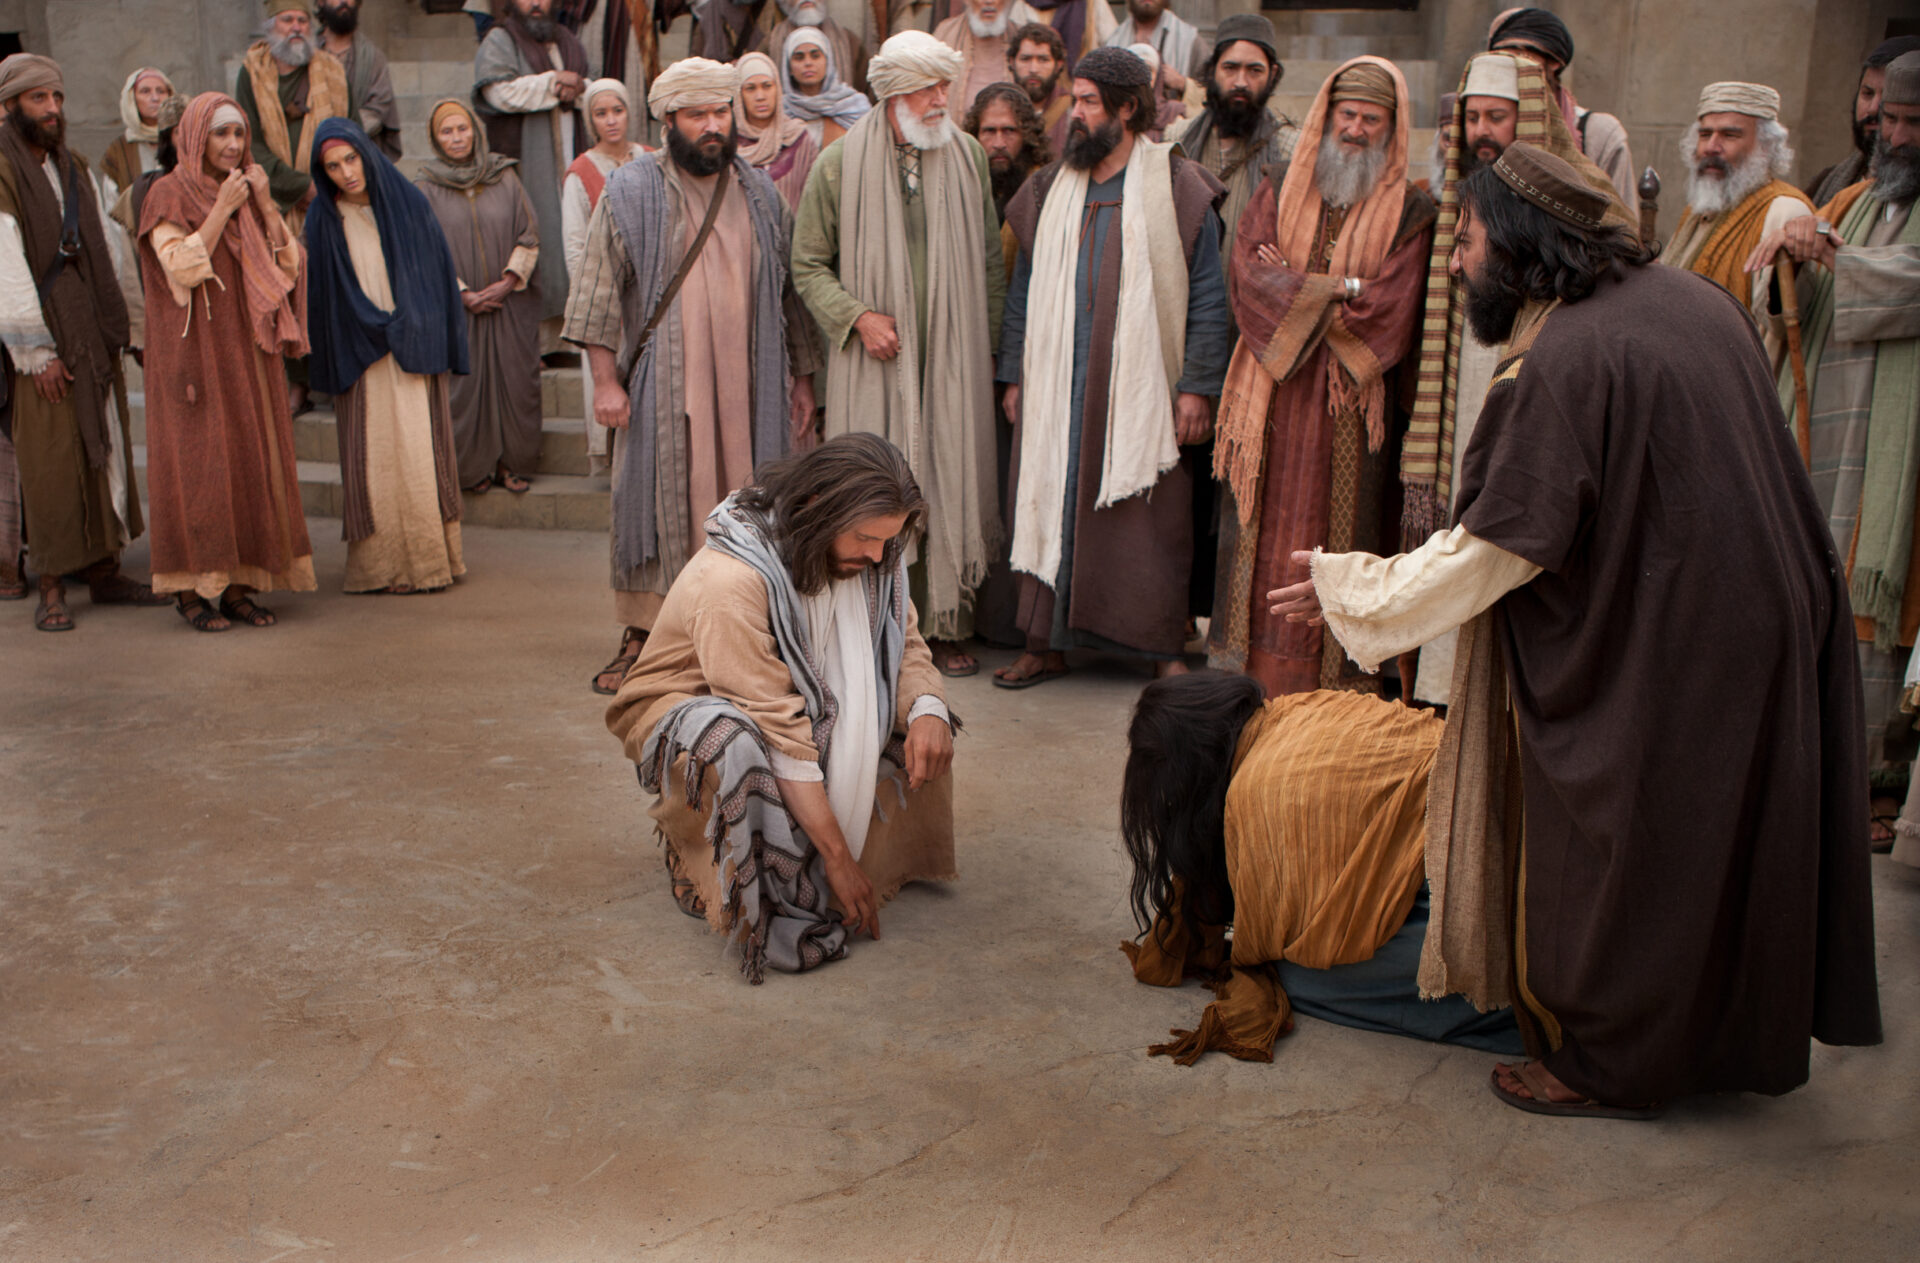 Did Yeshua Nullify or Uphold the Law with the Woman Caught in Adultery in John 8? (By Guest Blogger Sarah Rush)